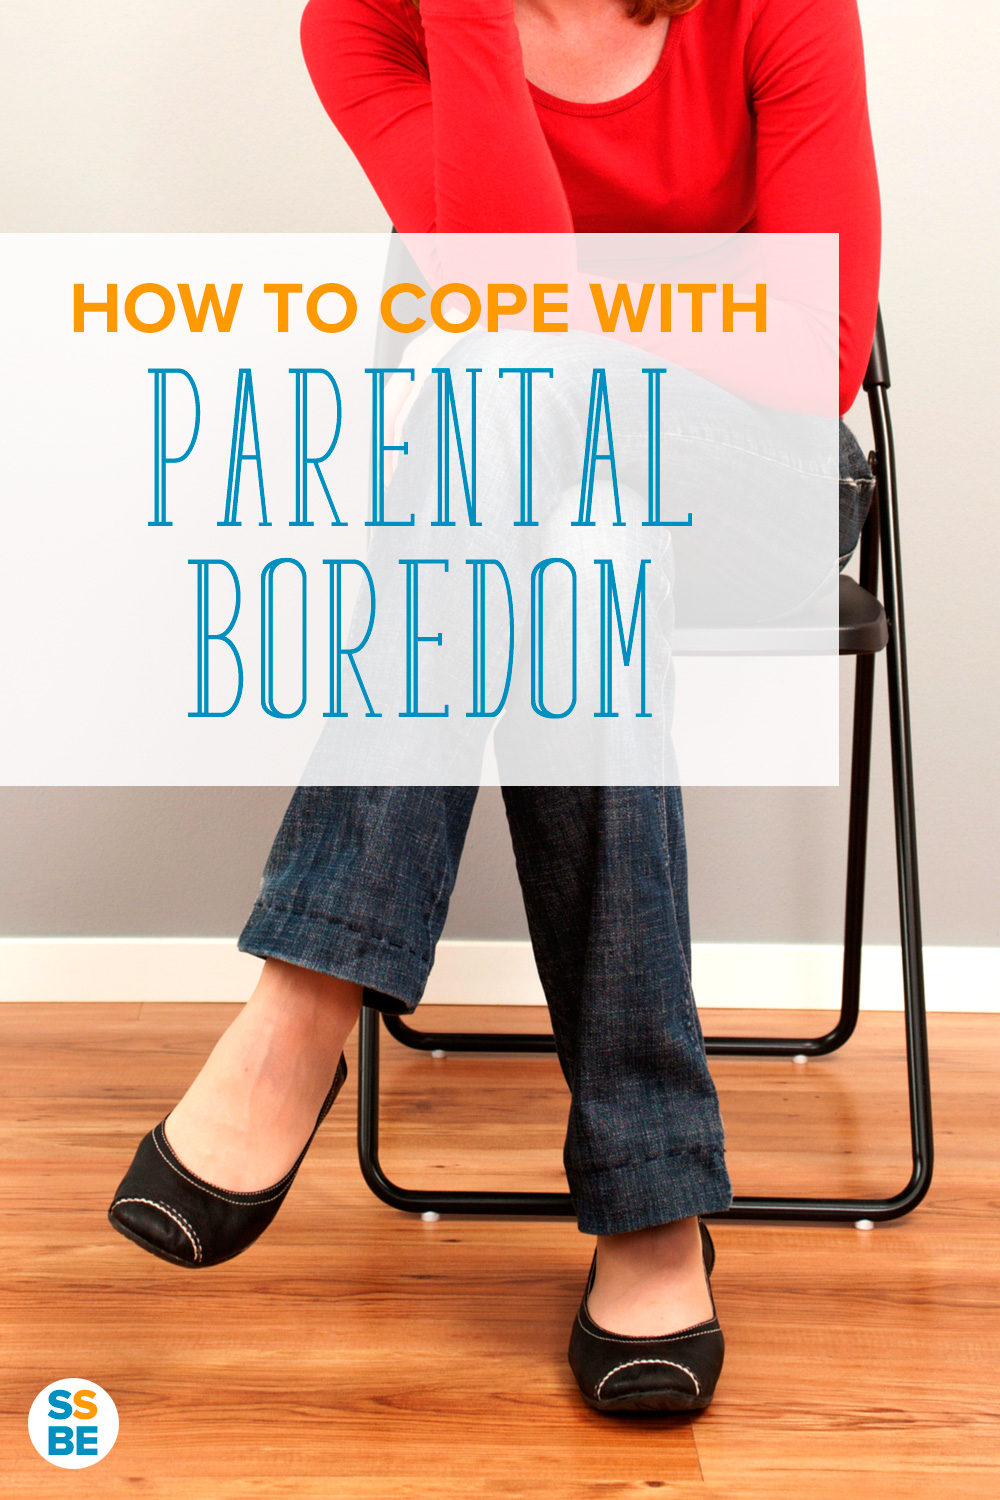 Suffering from parental boredom? Sometimes playing with kids get tiresome. Here are tips for those days when you're bored playing with kids.